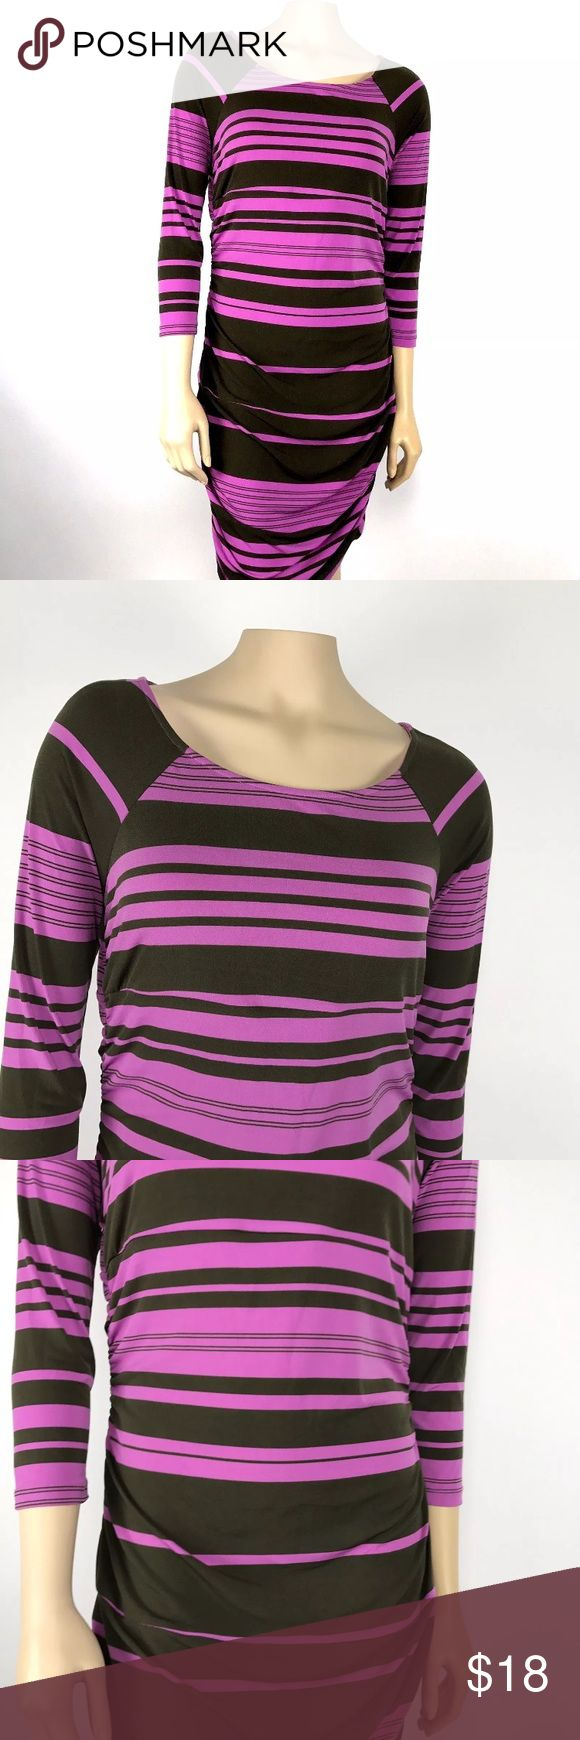 """Sofia Vergara Ruched Dress Women's size large purple & brown striped Sofia Vergara ¾ length sleeve, ruched stretch dress. 95% polyester, 5% spandex.   Measurements (flat lay): Armpit to armpit – 17 ½"""" Length – 38""""  Comes from a smoke free home!   Pre-owned. In good condition. No rips, tears, holes or stains. Sofia Vergara Dresses"""